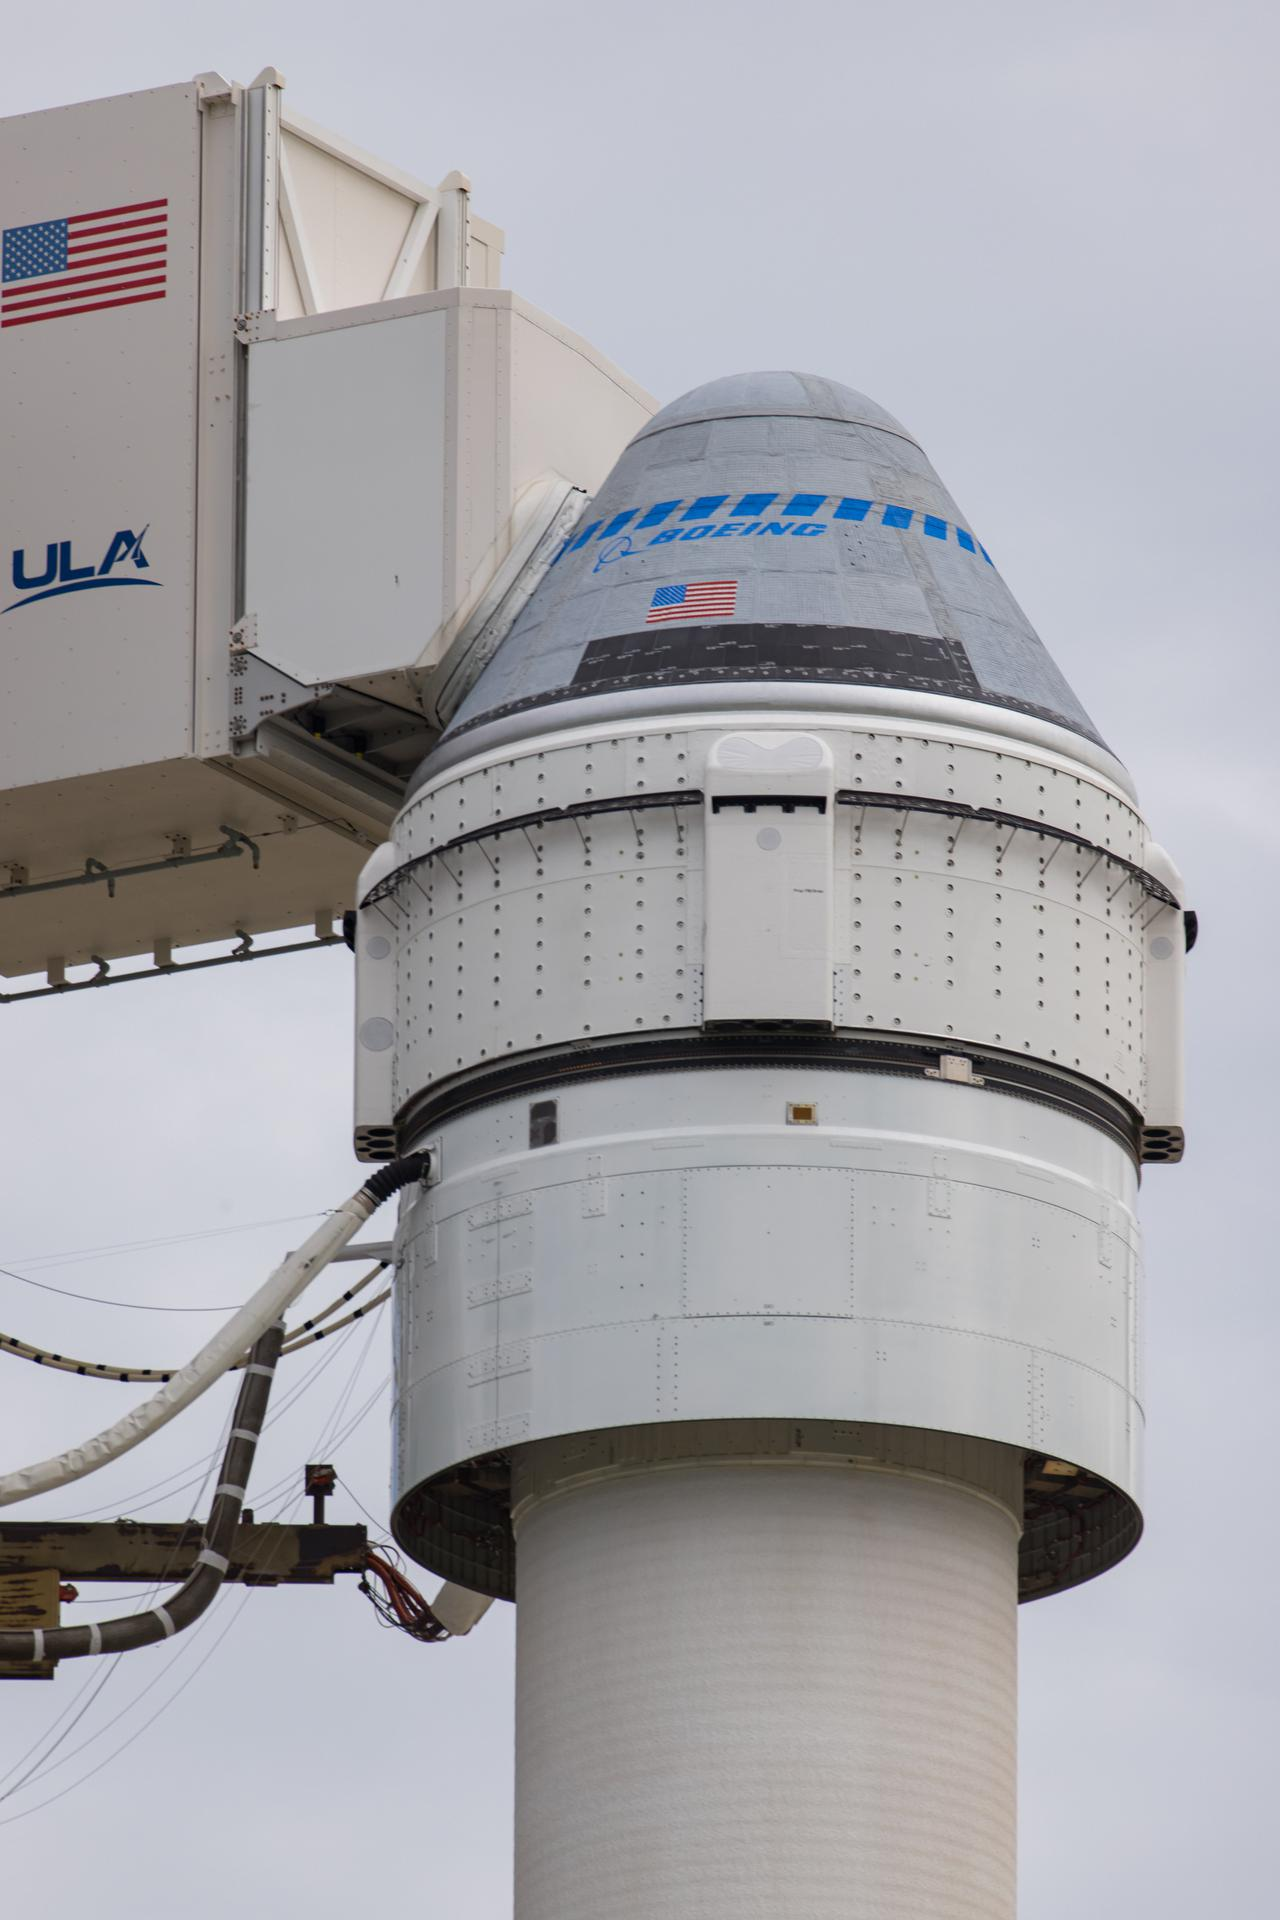 Boeing's CST-100 Starliner spacecraft sits atop a United Launch Alliance Atlas V rocket on Cape Canaveral Space Force Station in Florida.